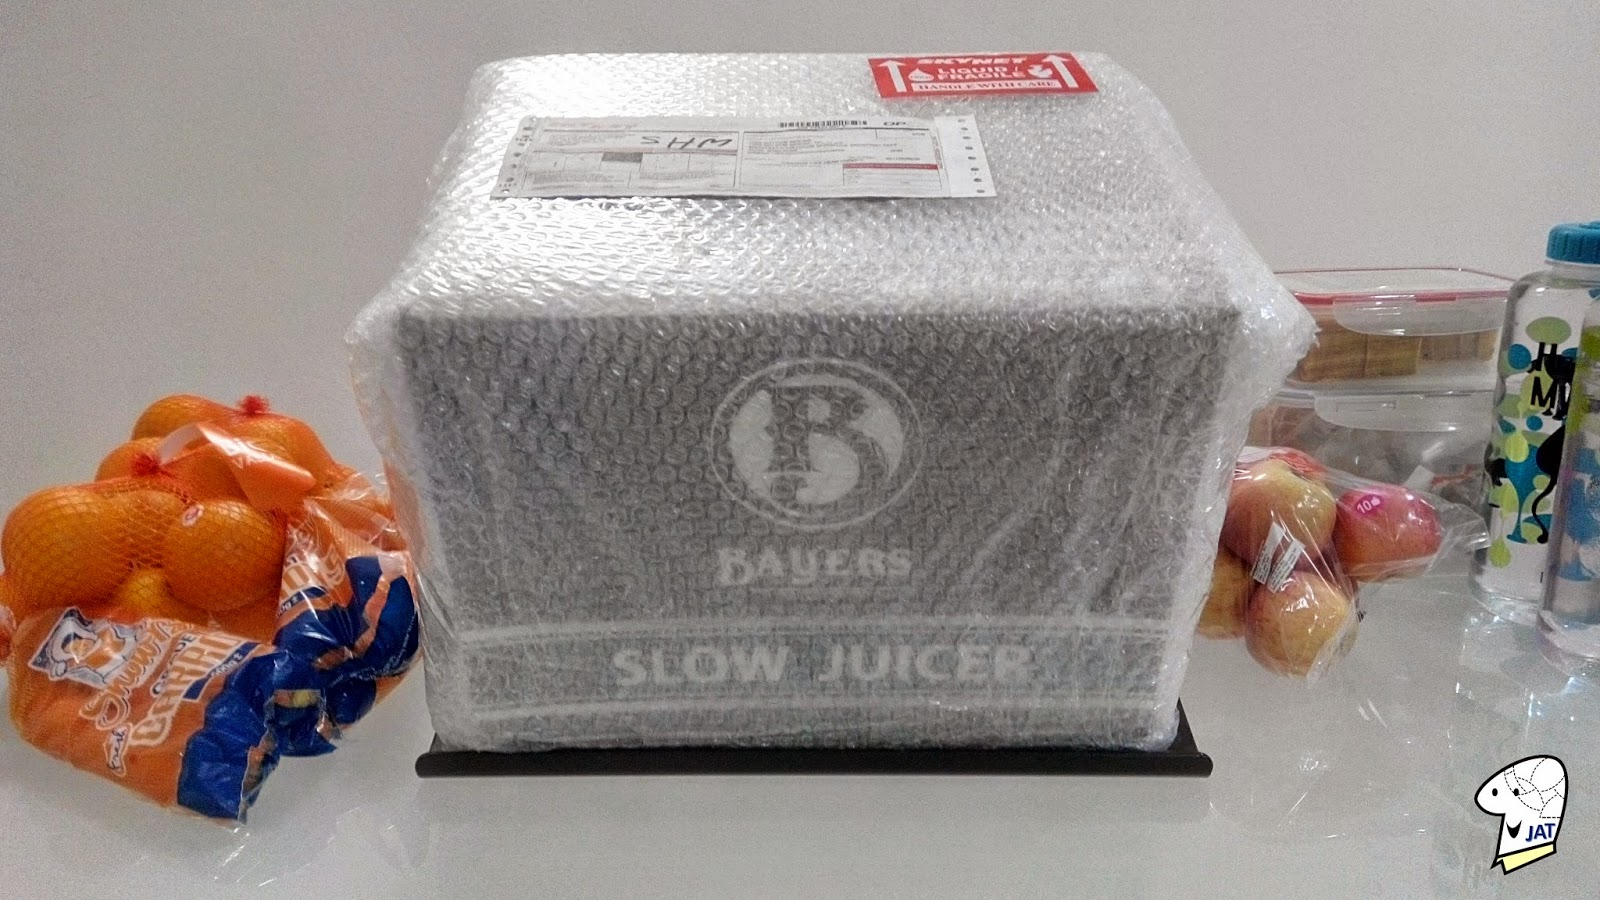 Bayers Dual Stage Slow Juicer, bubble wrapped